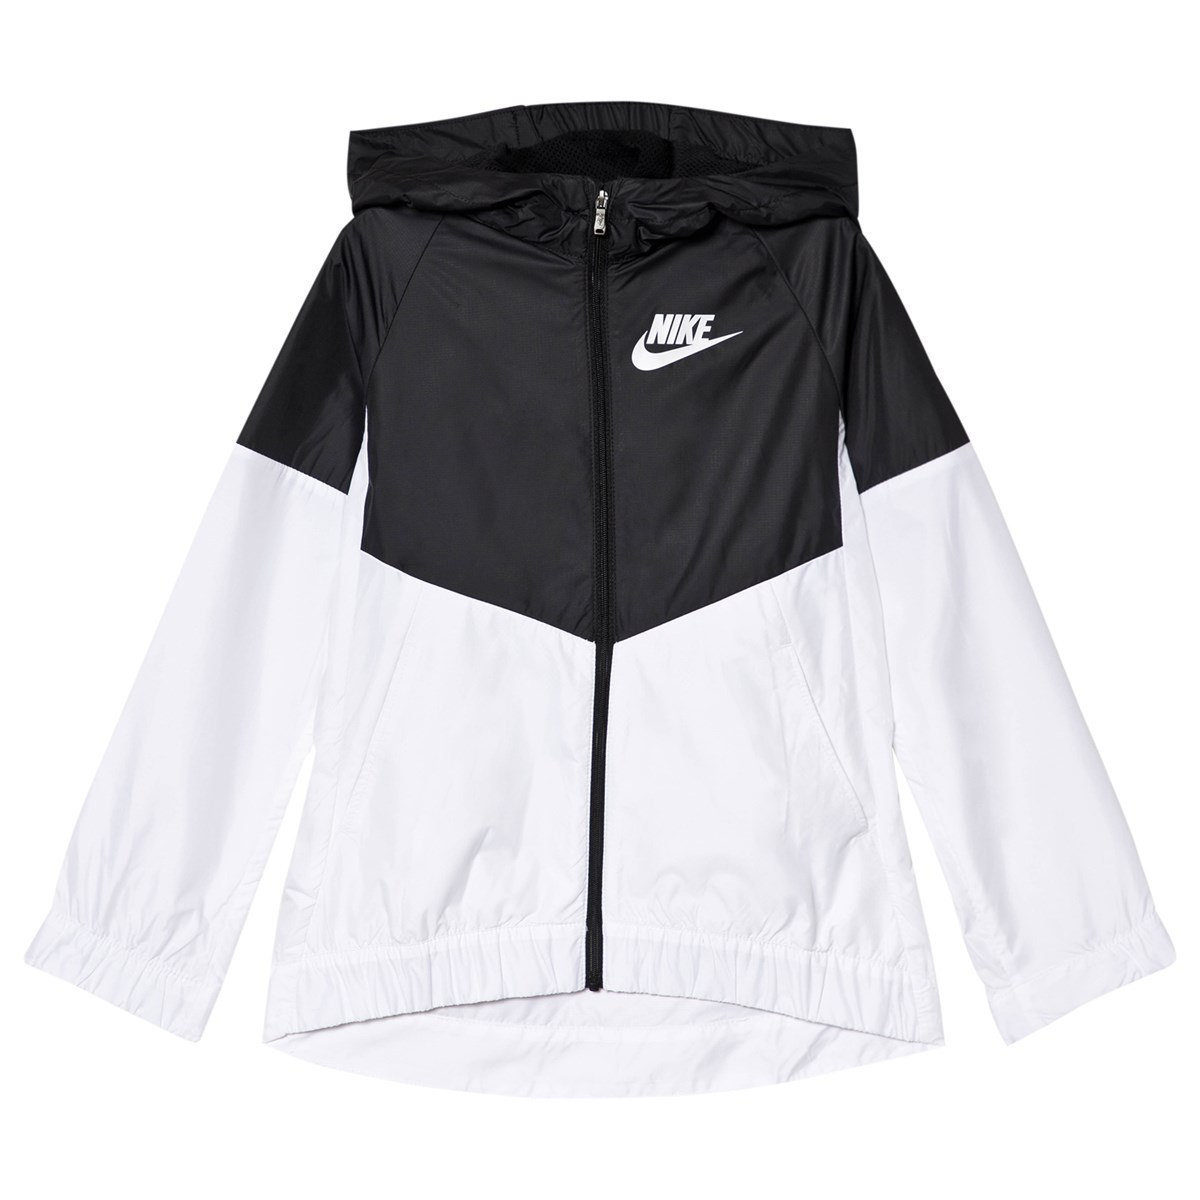 classic a4964 a5c7b nike black and white sportswear windrunner jacket